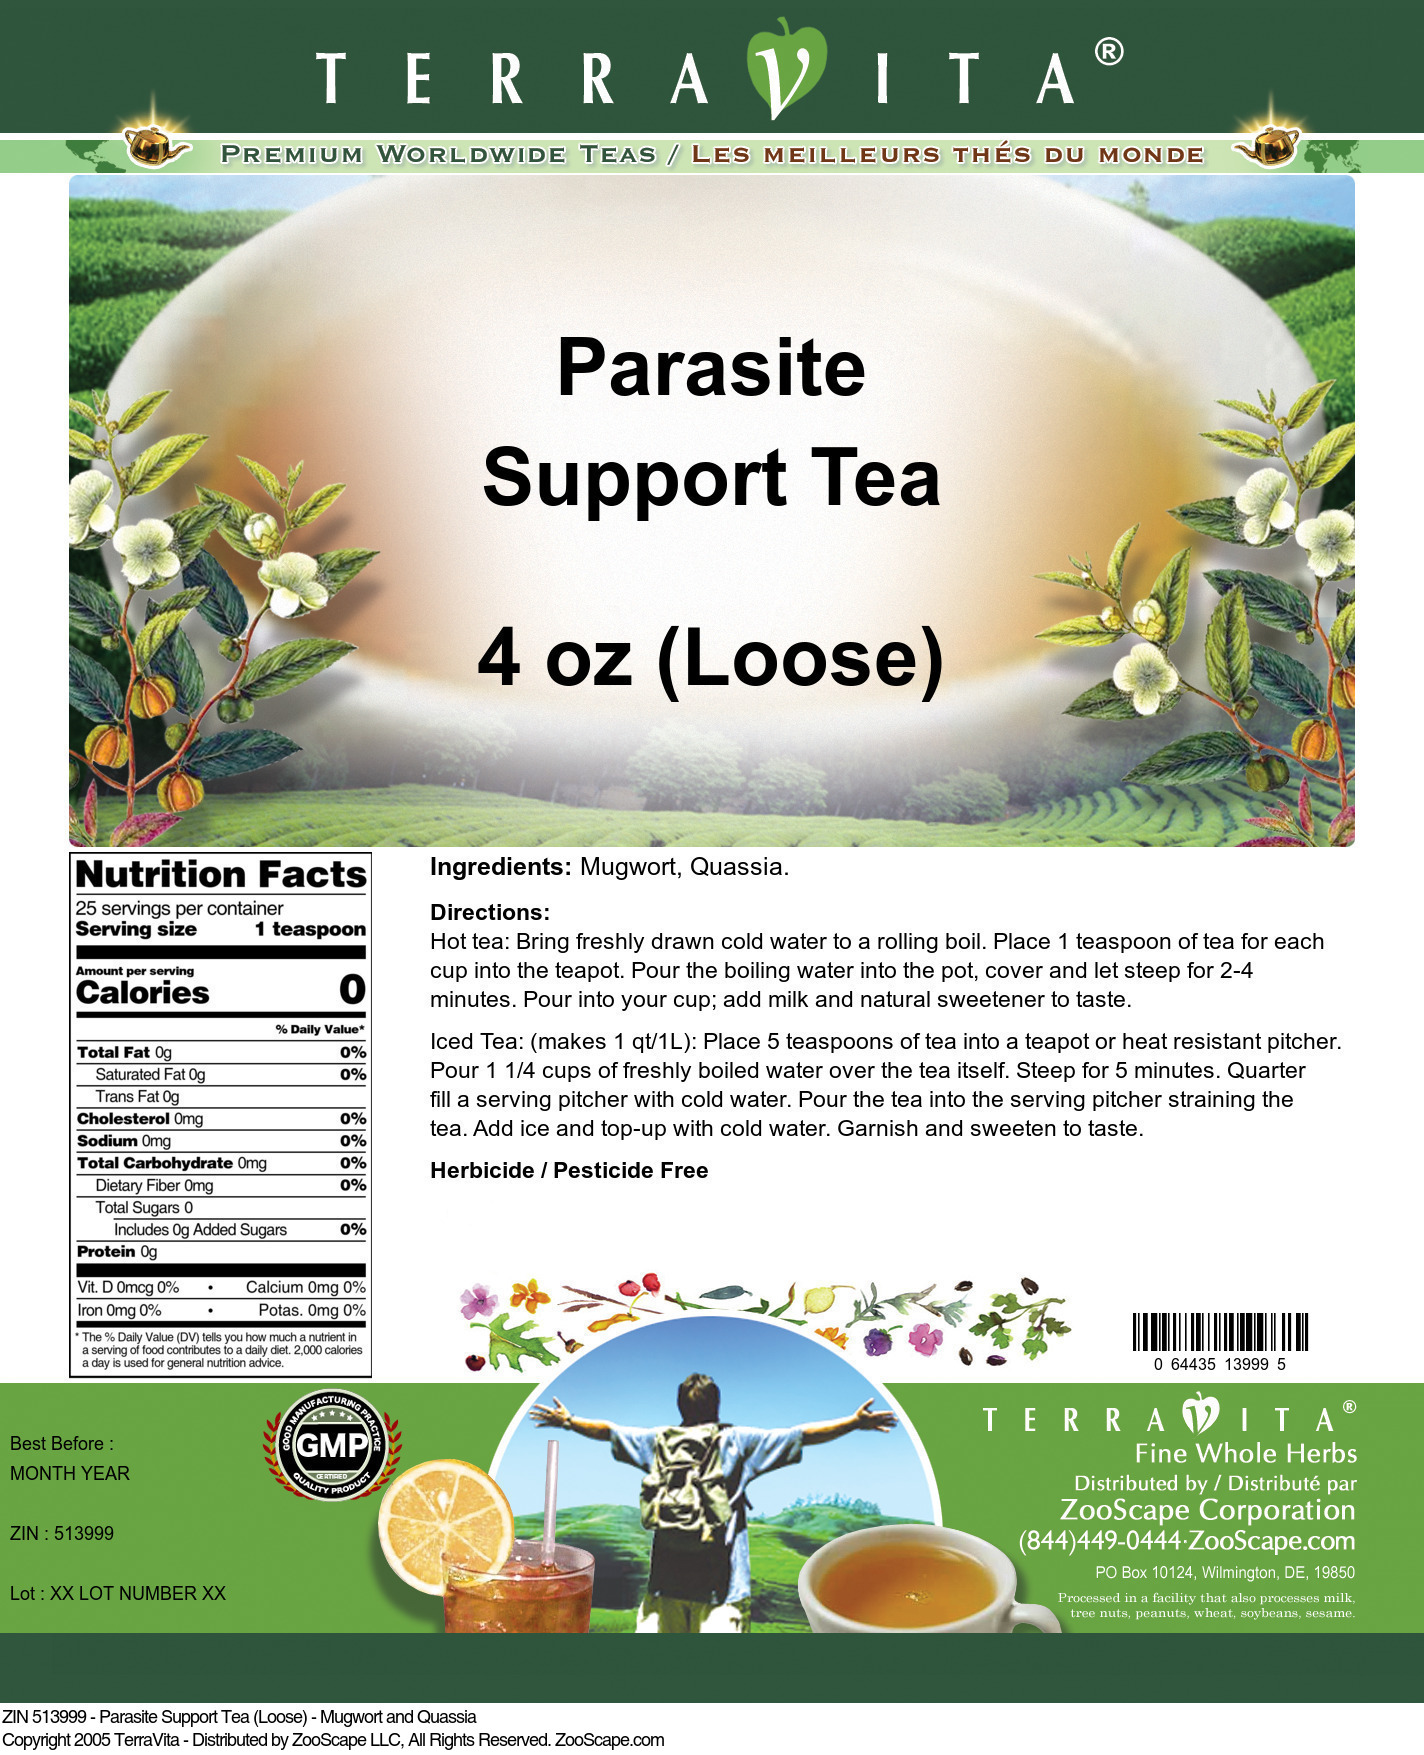 Parasite Support